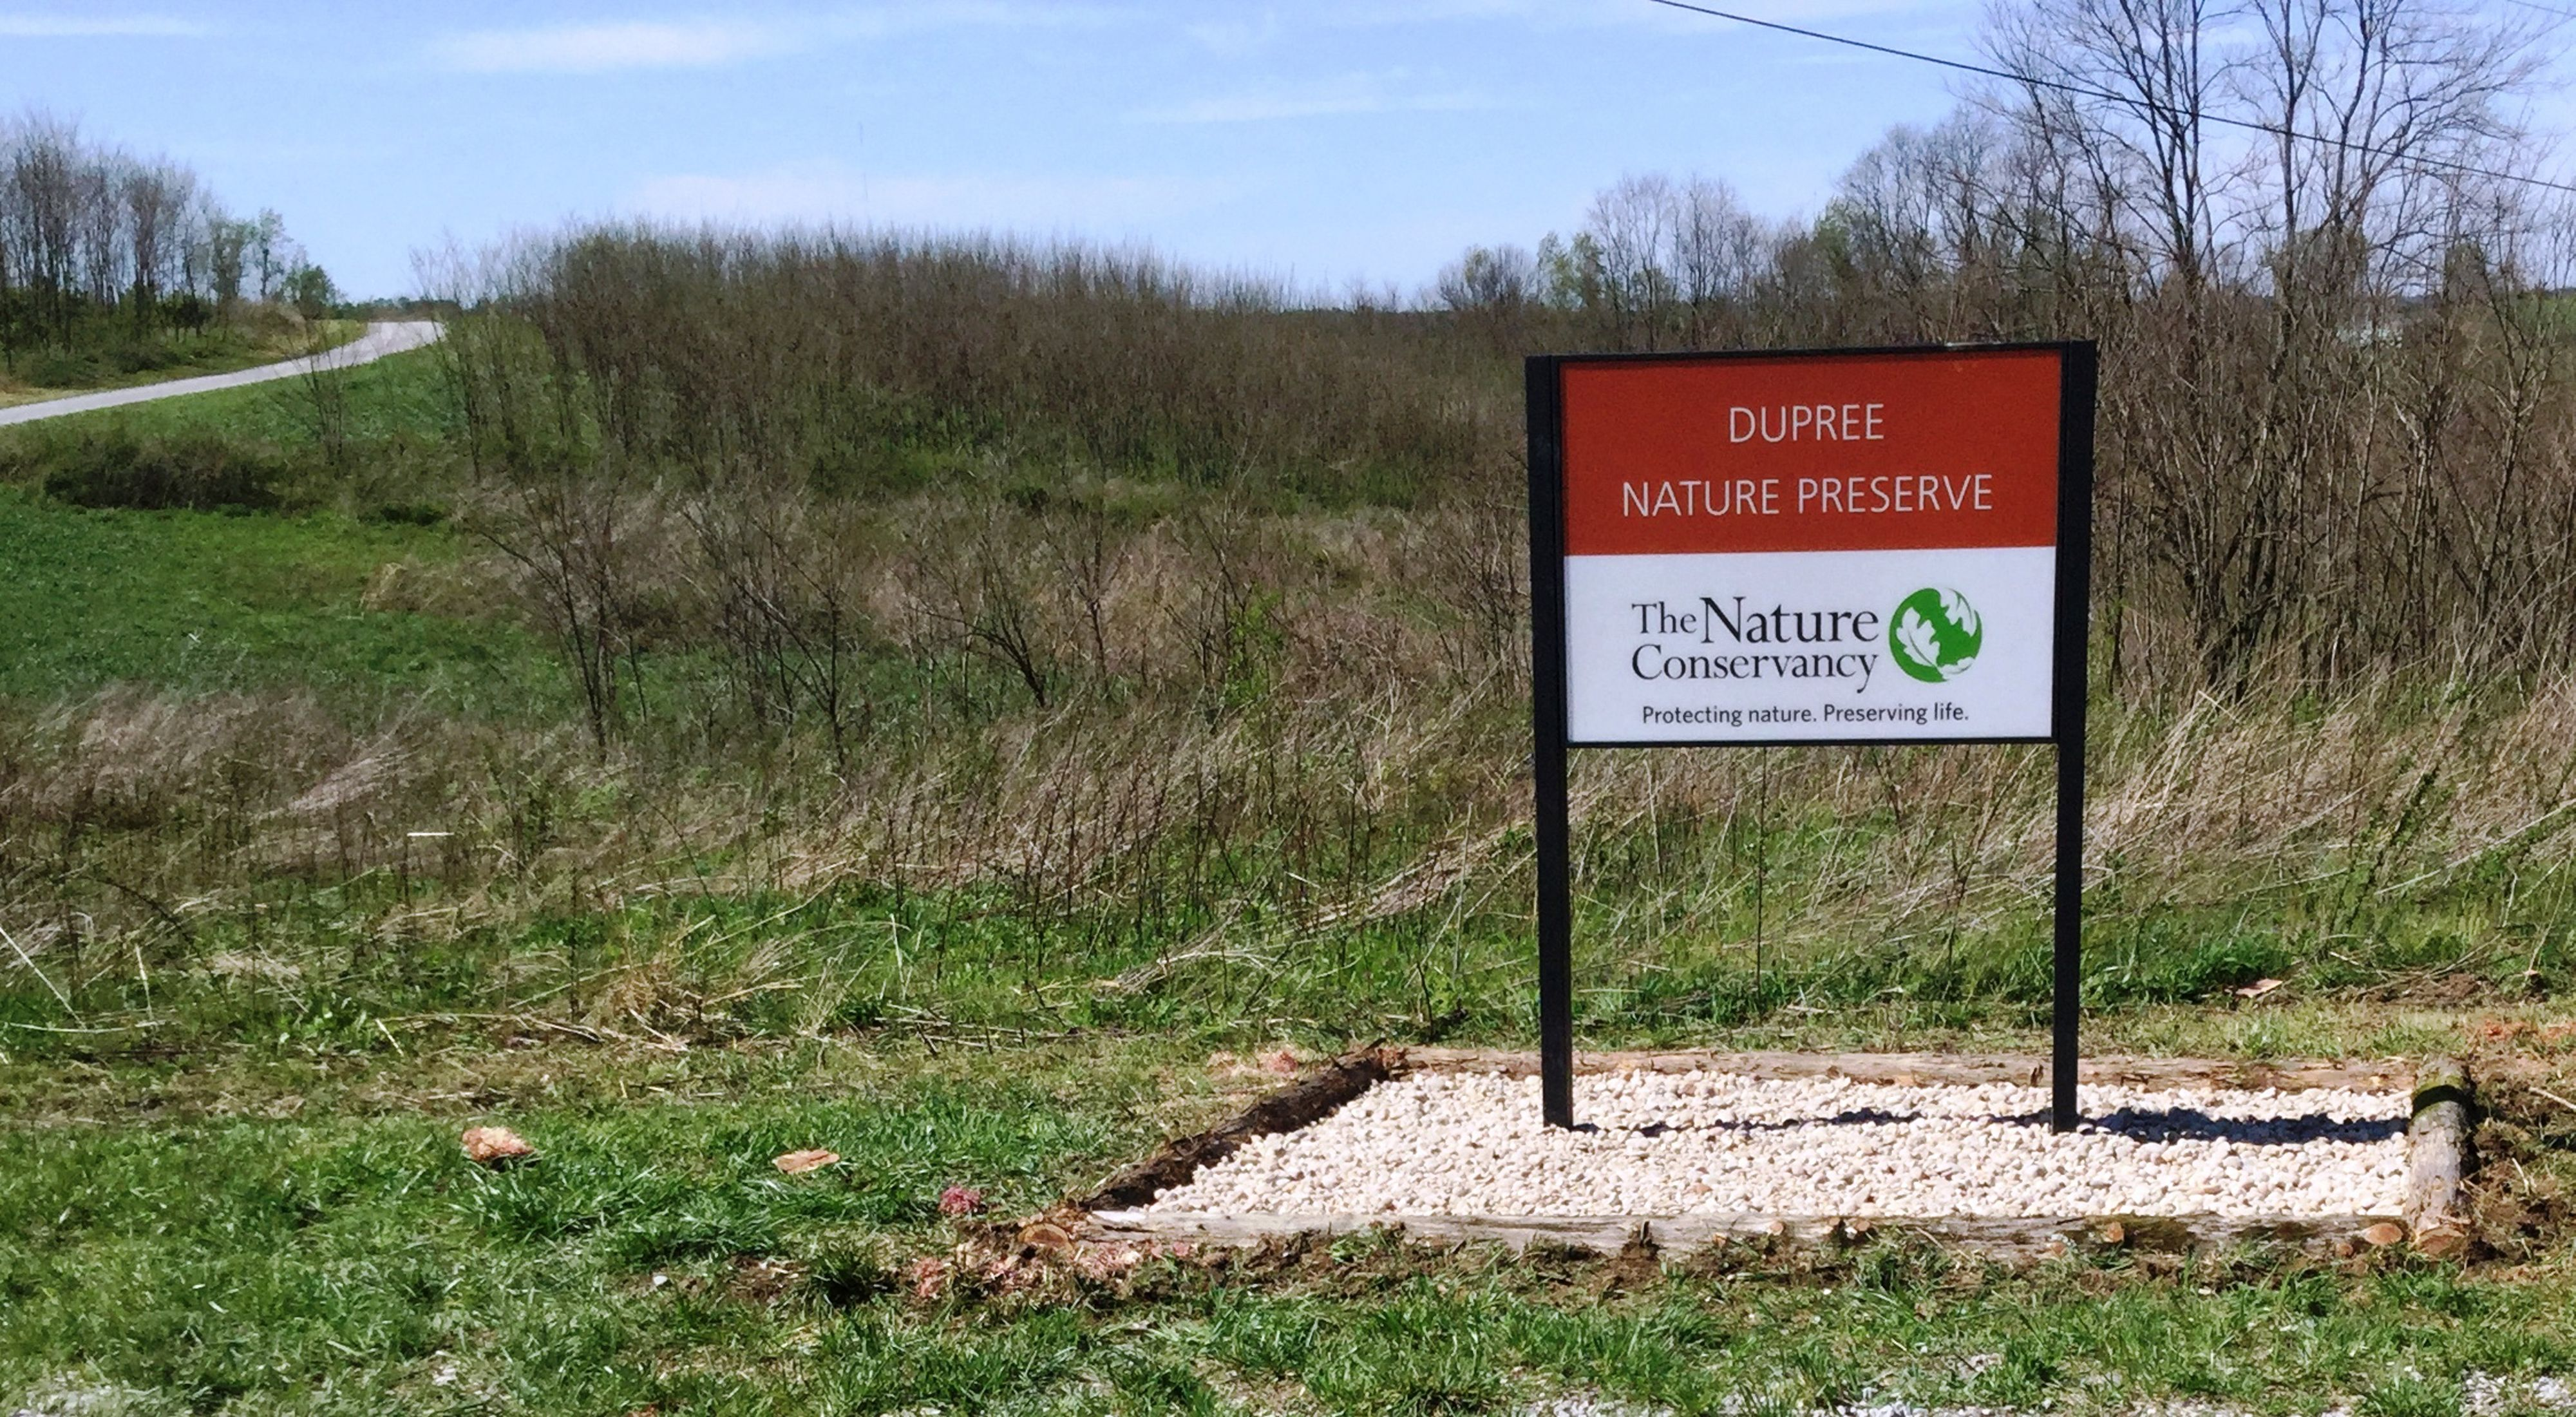 A brown and white sign marks a nature preserve.